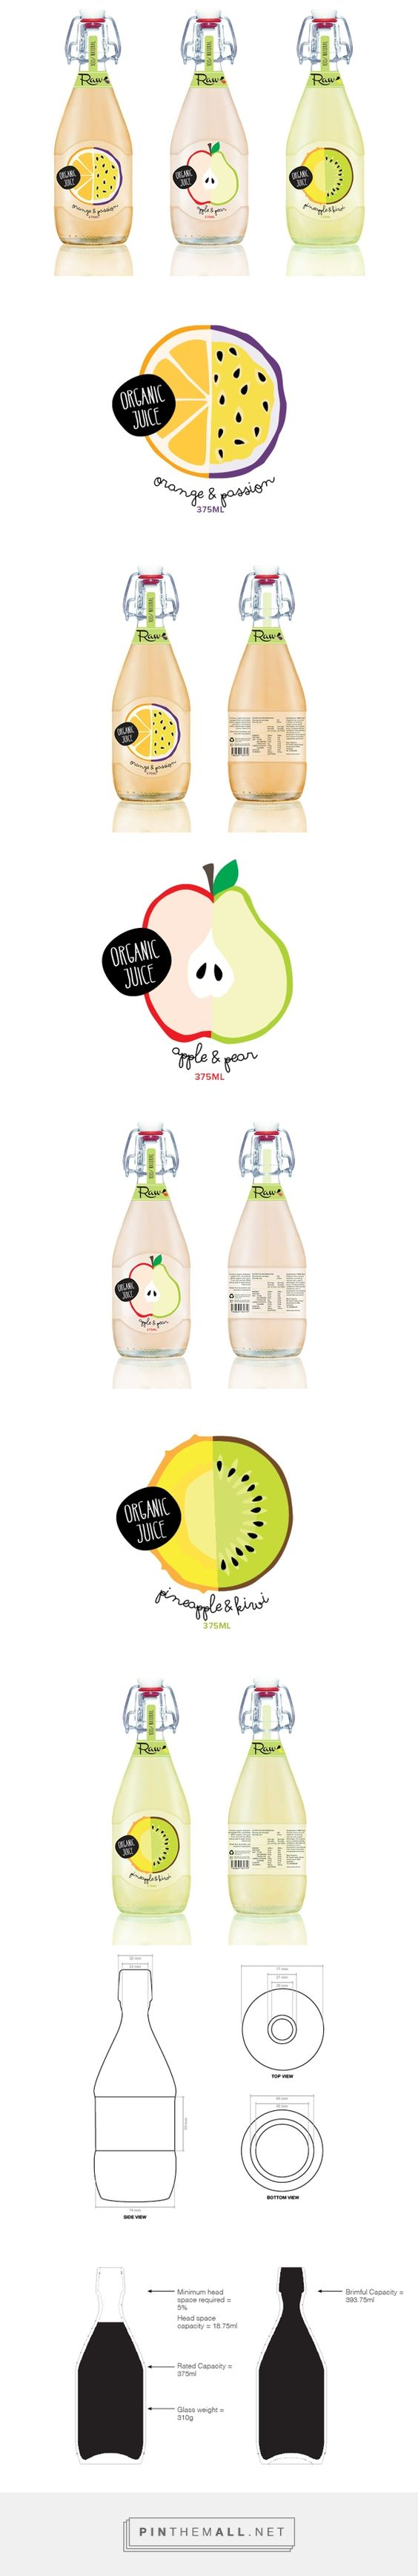 Raw Juice Bottle on Behance by Kenya Carroll curated by Packaging Diva PD.  Love juice packaging concept for Southern Cross Packaging Competition.: